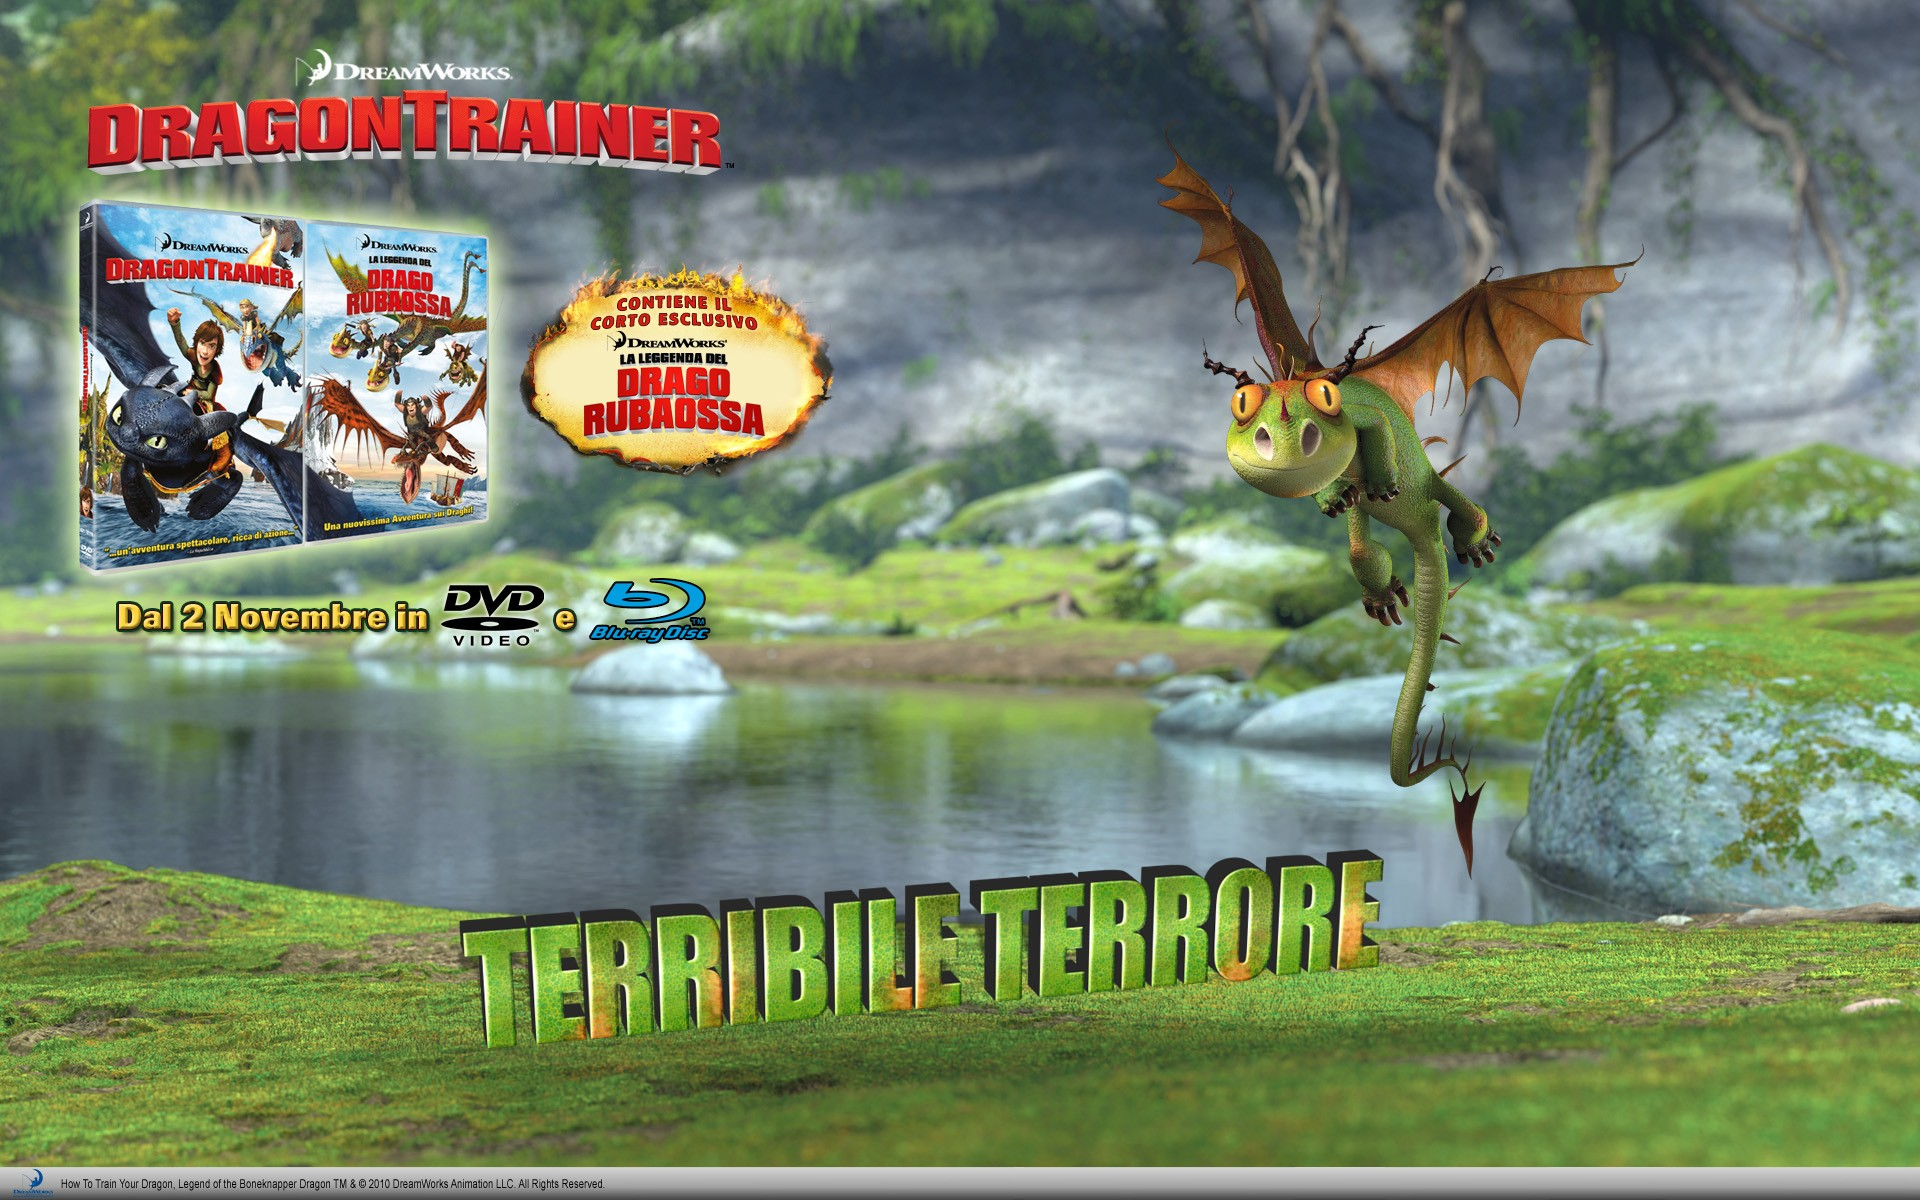 Un wallpaper per l'uscita homevideo di Dragon Trainer